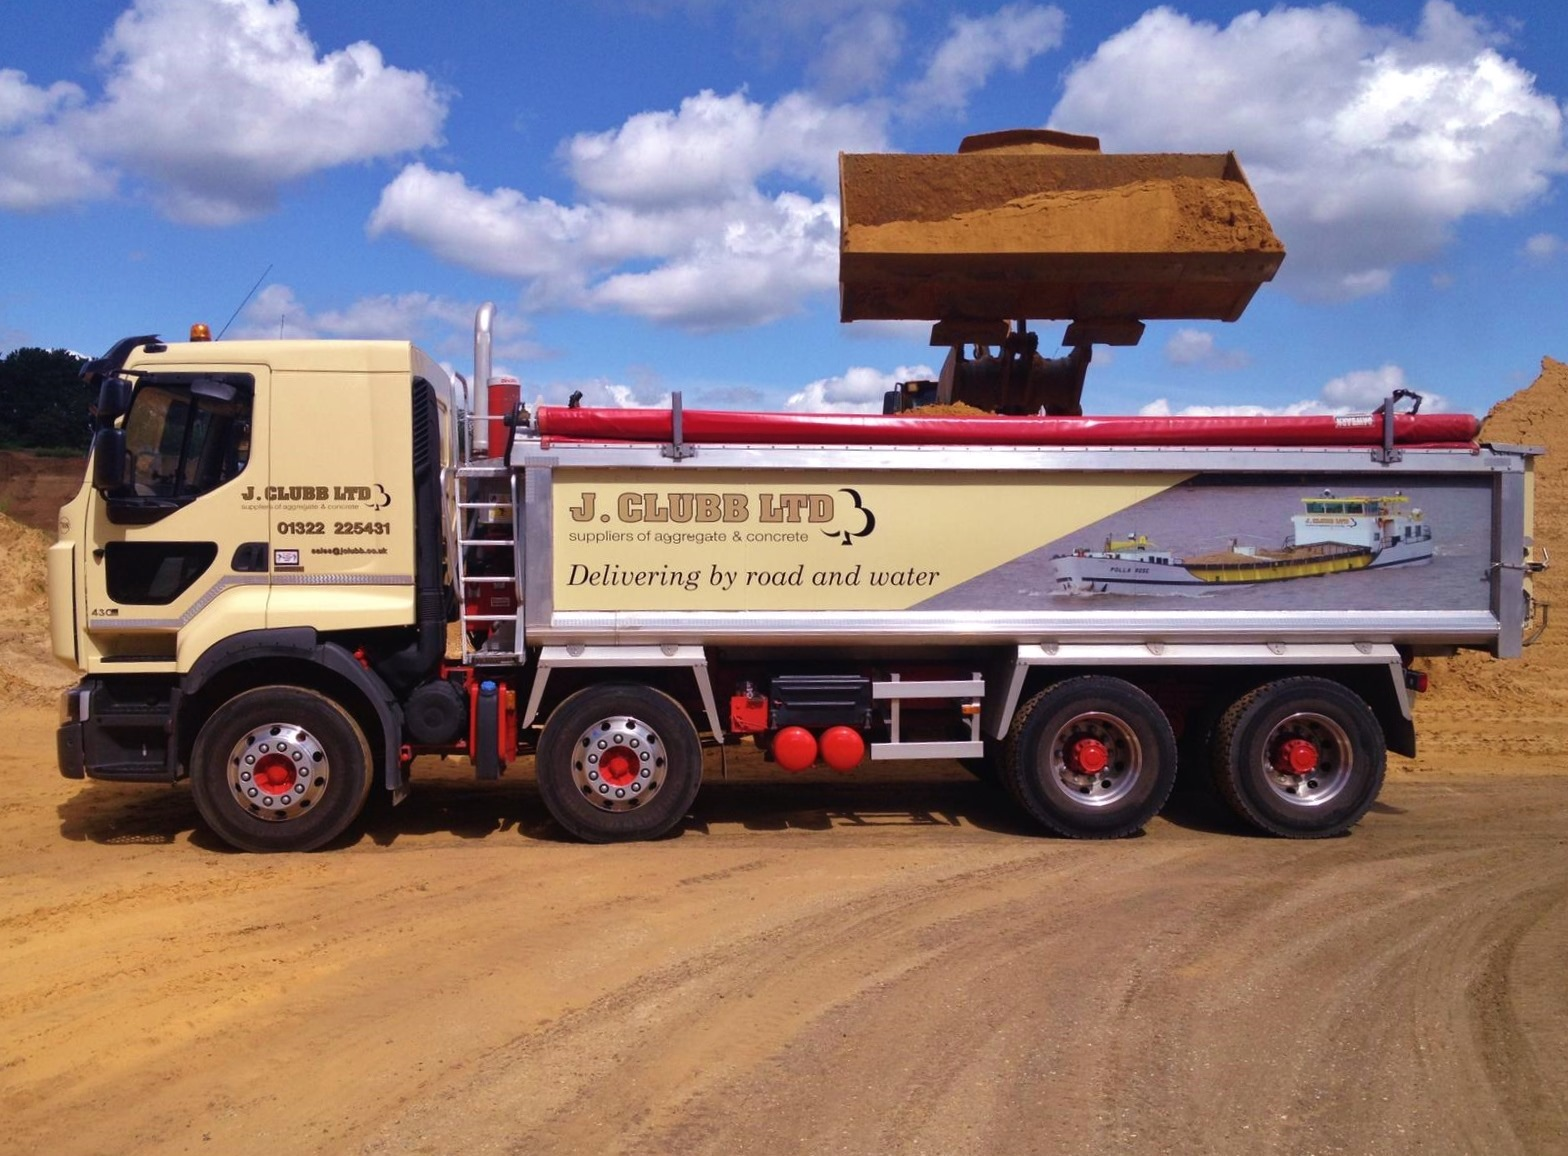 Howes Percival helps cement deal for Agar Dry Mortar